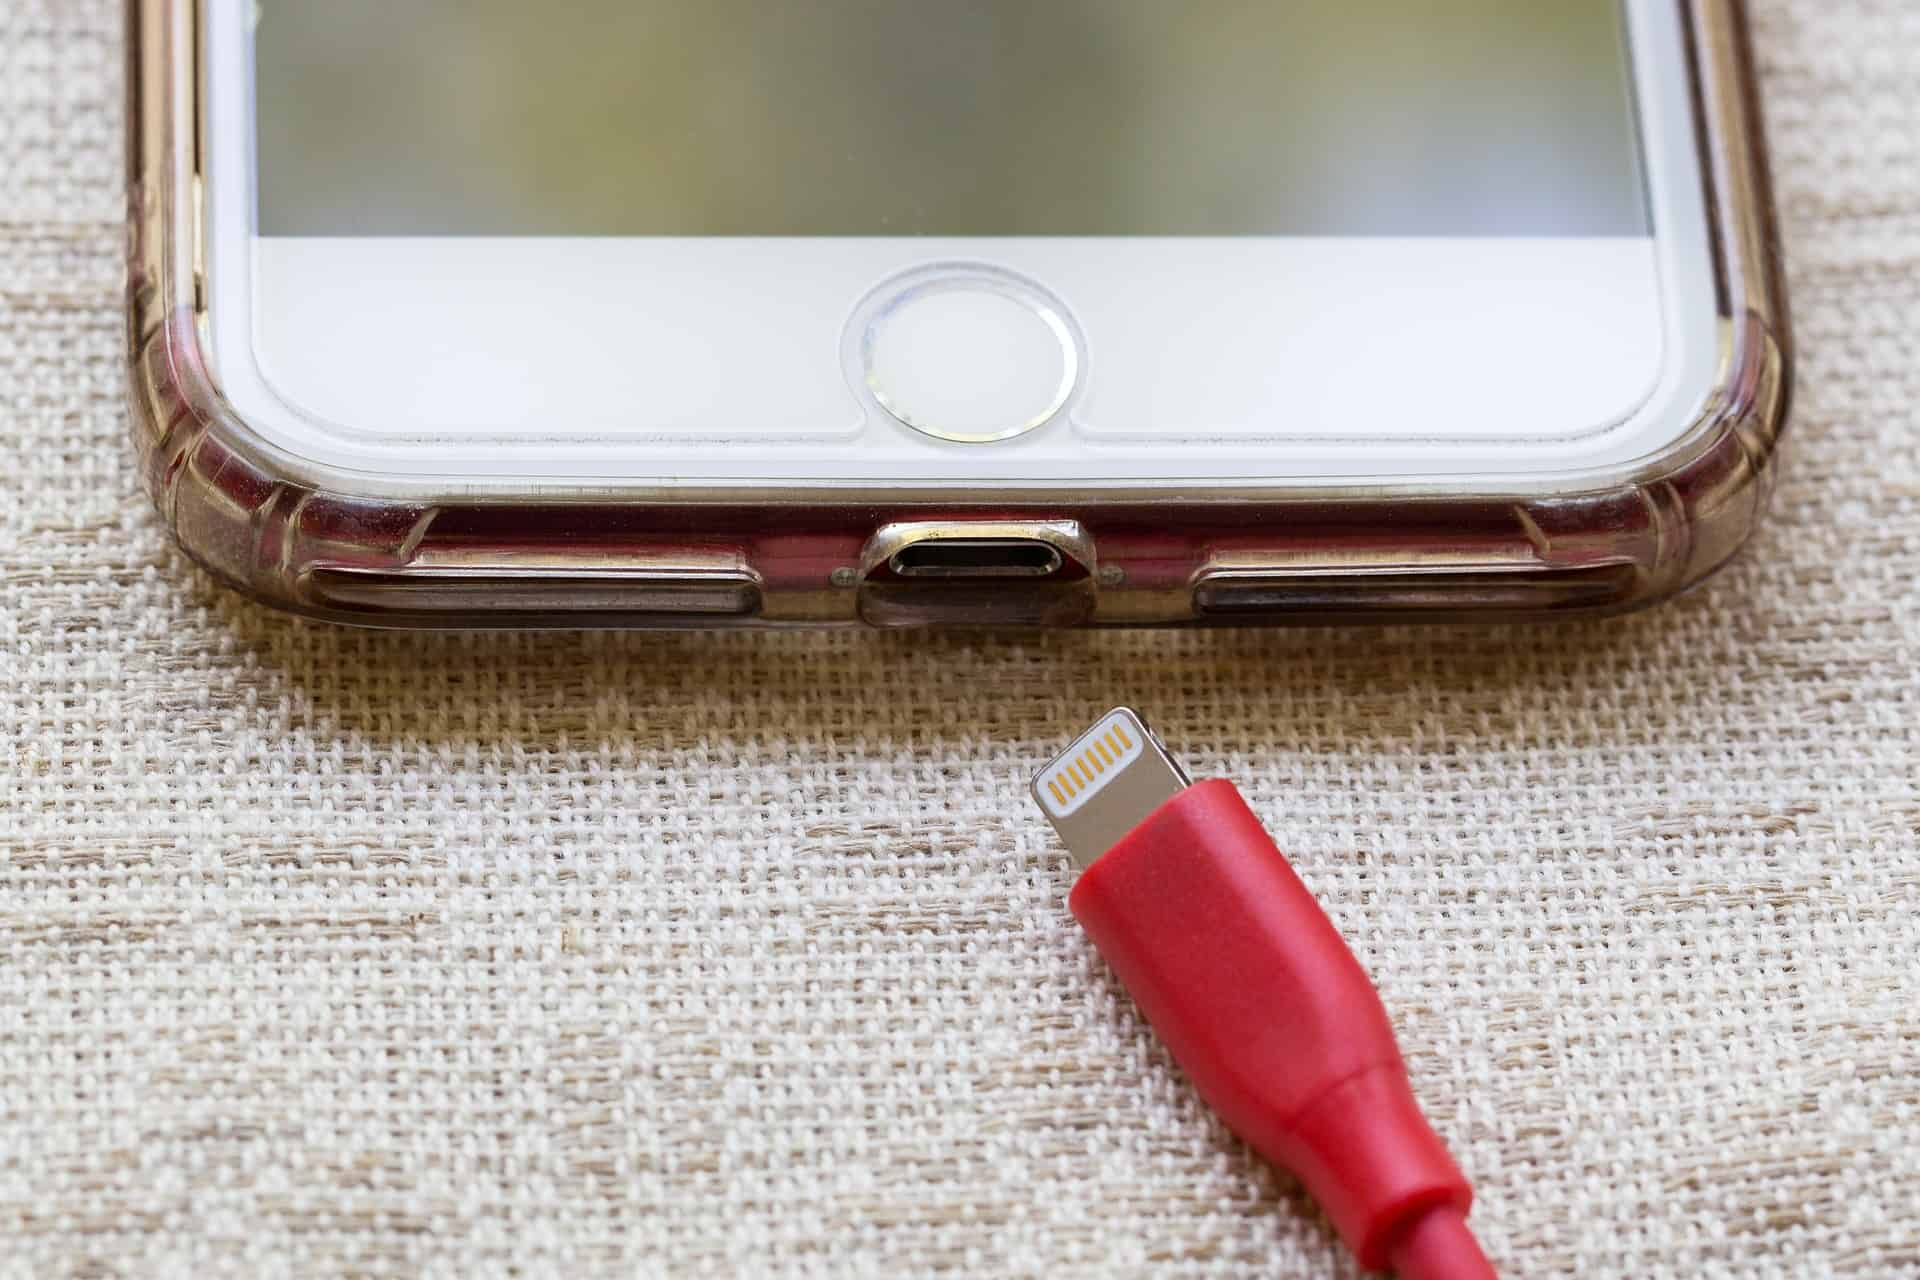 iOS 11 to iOS 12.2 could drain your iPhone, iPad and iPod touch battery faster